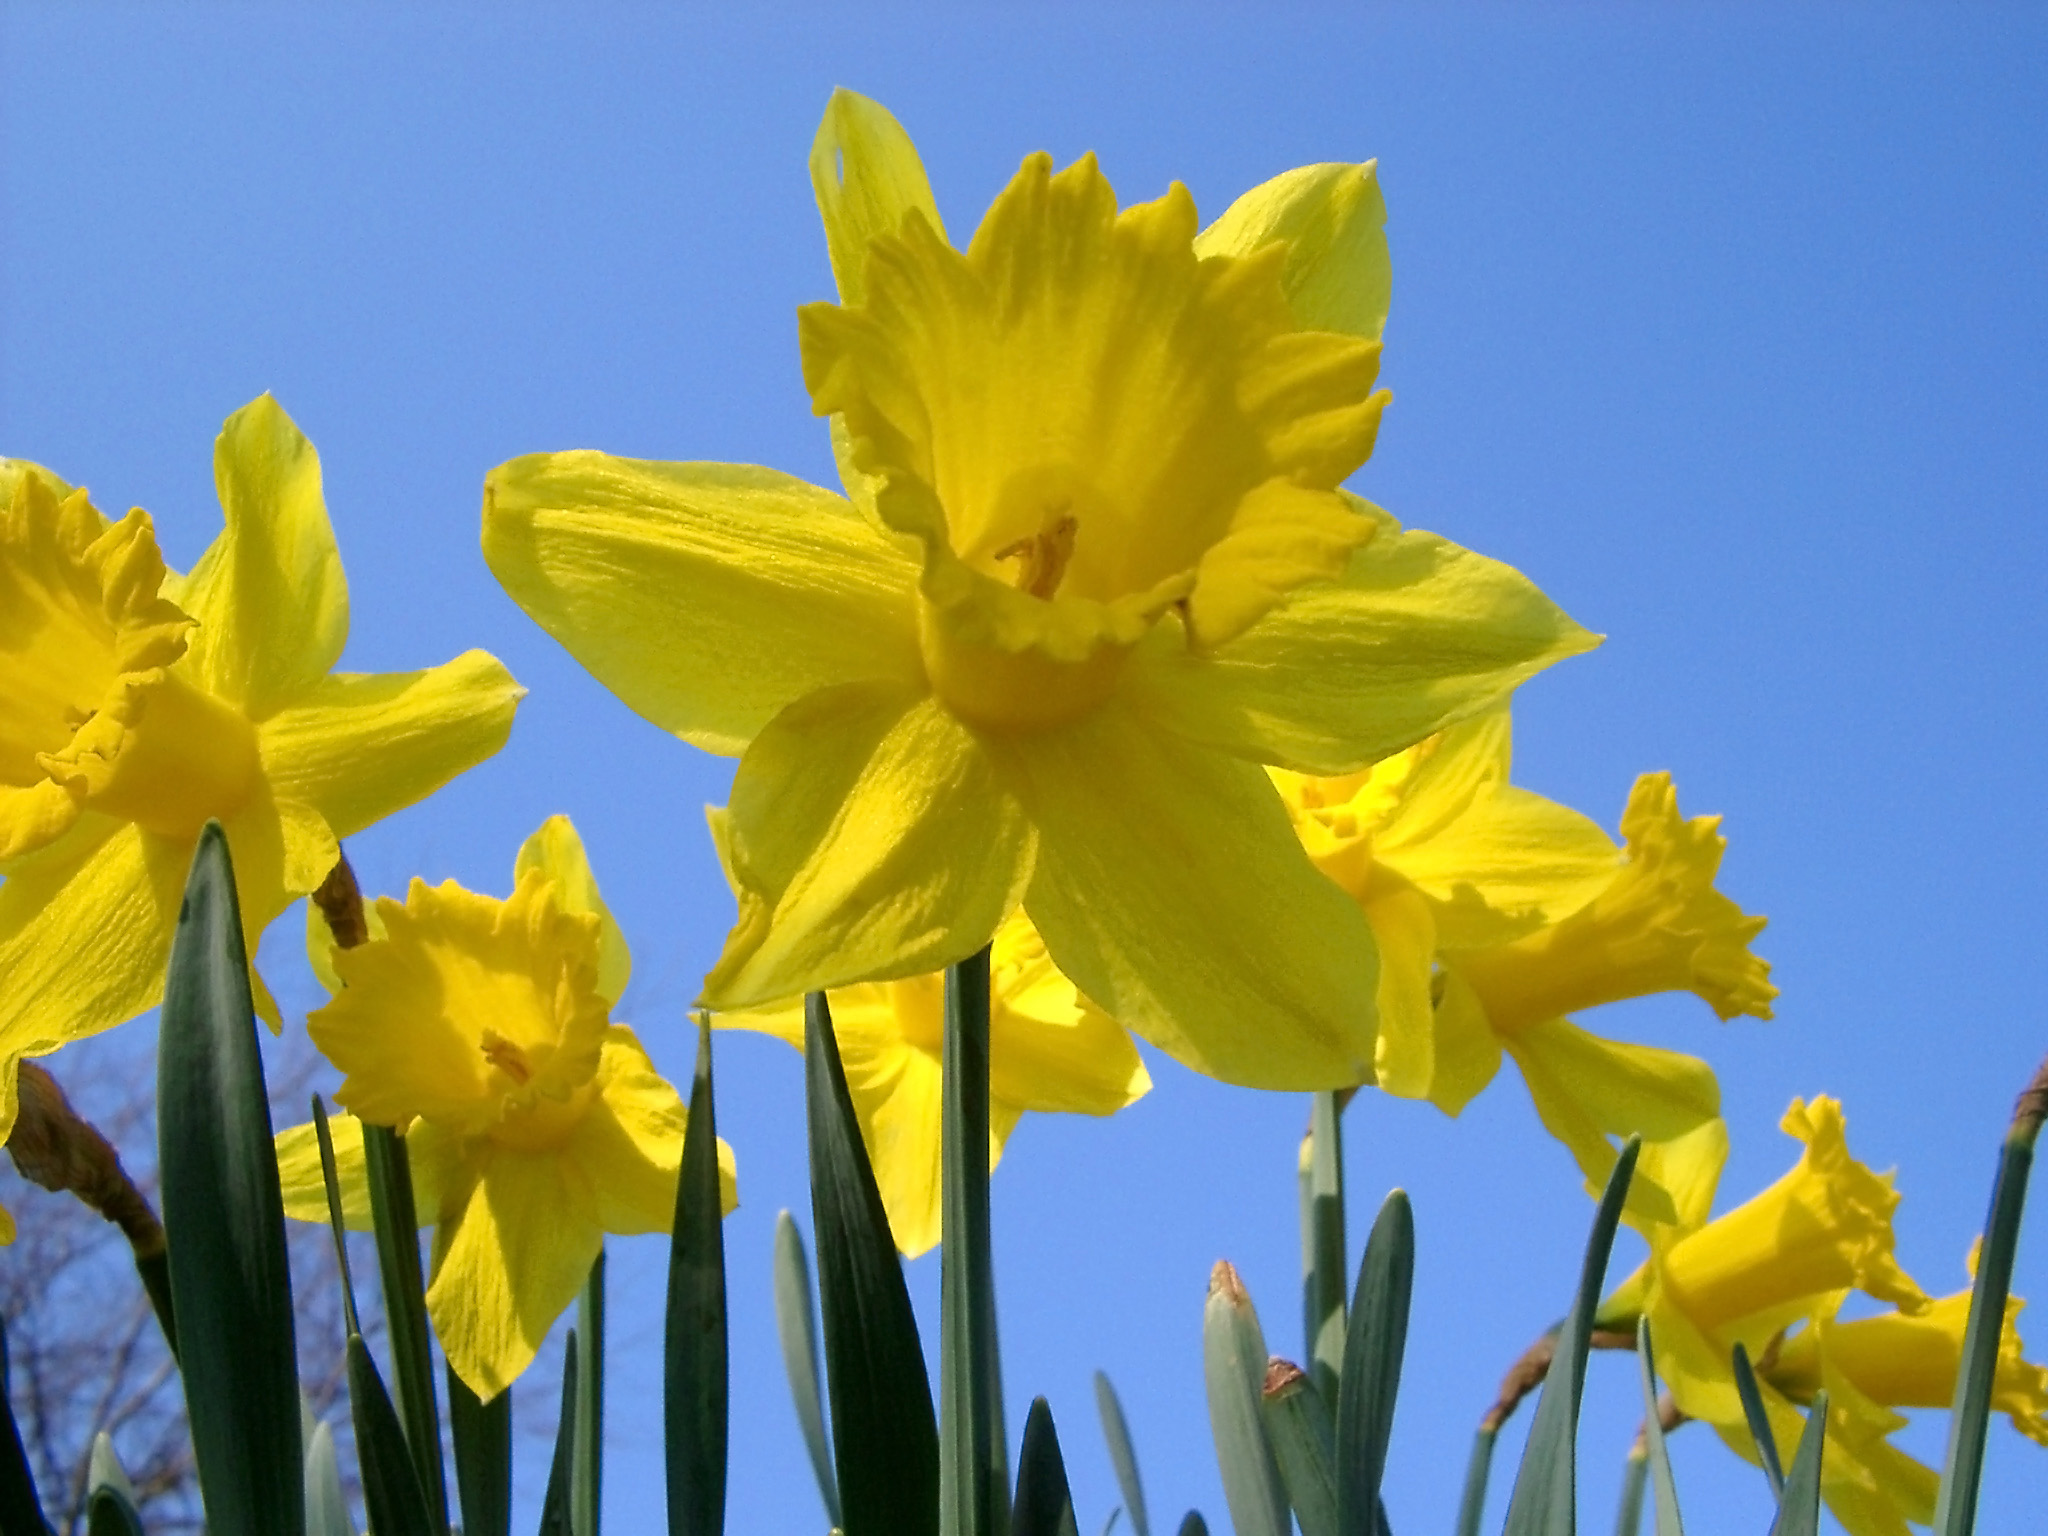 Yellow daffodil or narcissus flowers, spring-flowering bulbous perennial plants, under a clear blue sky